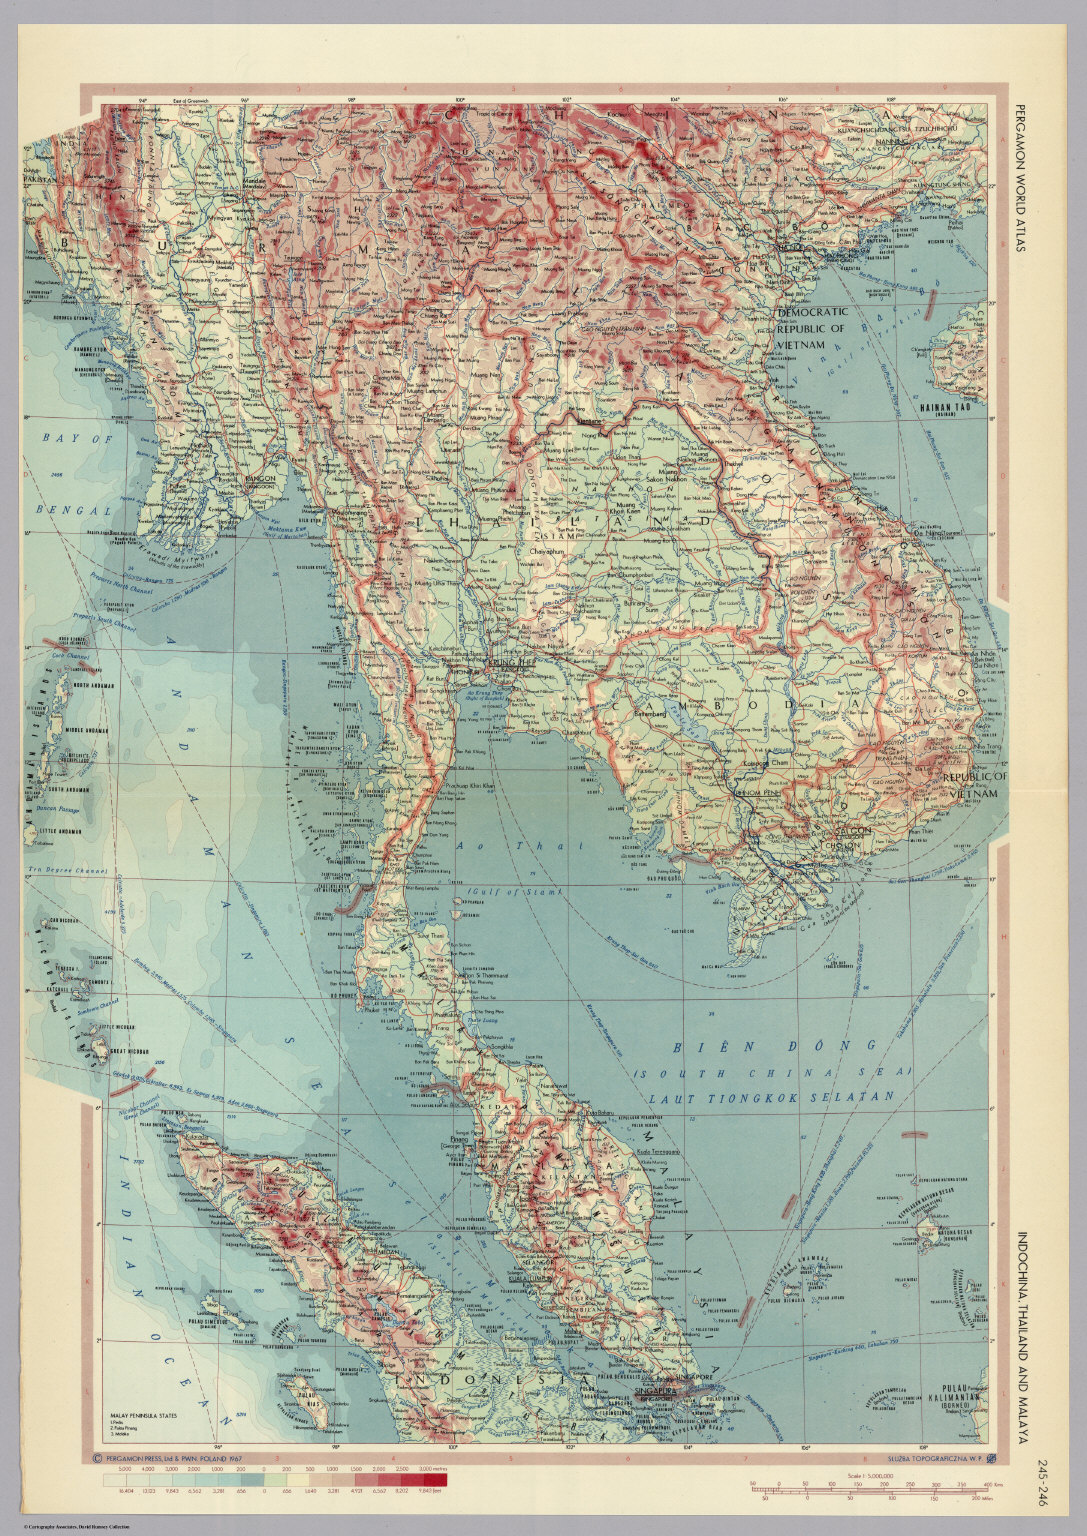 Indonesia thailand and malaya pergamon world atlas david rumsey indonesia thailand and malaya pergamon world atlas david rumsey historical map collection gumiabroncs Gallery